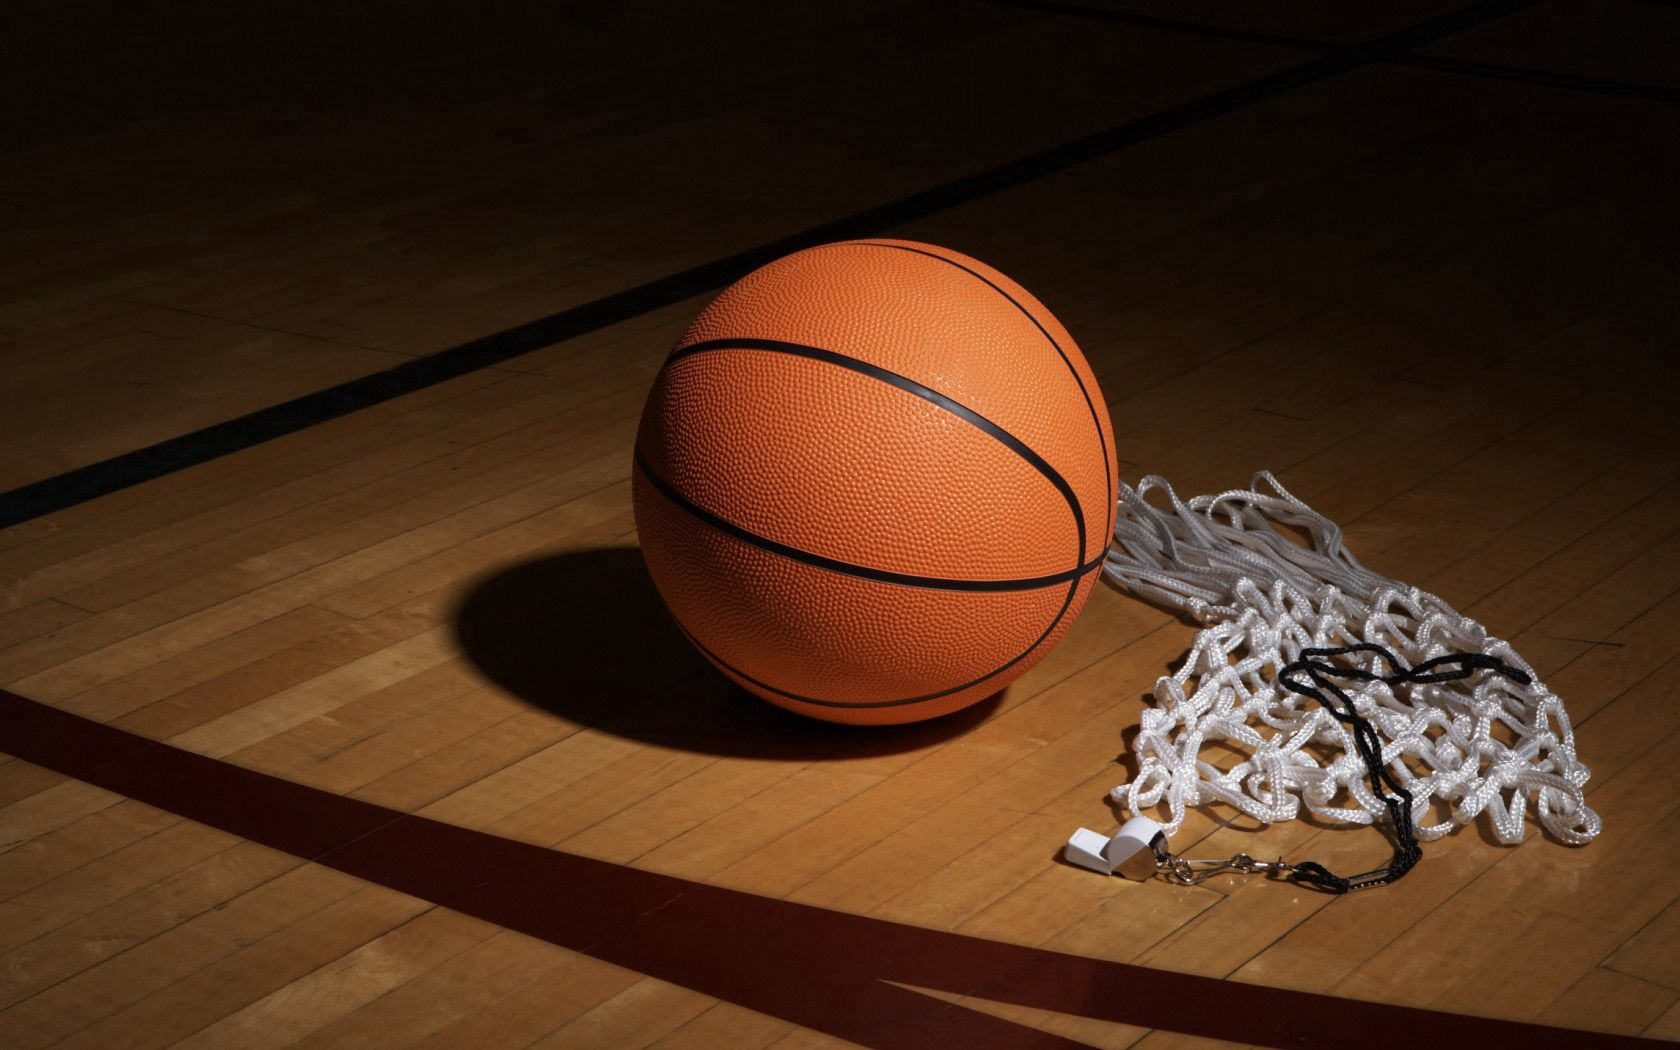 66632 download wallpaper Sports, Basketball, Grid, Whistle screensavers and pictures for free